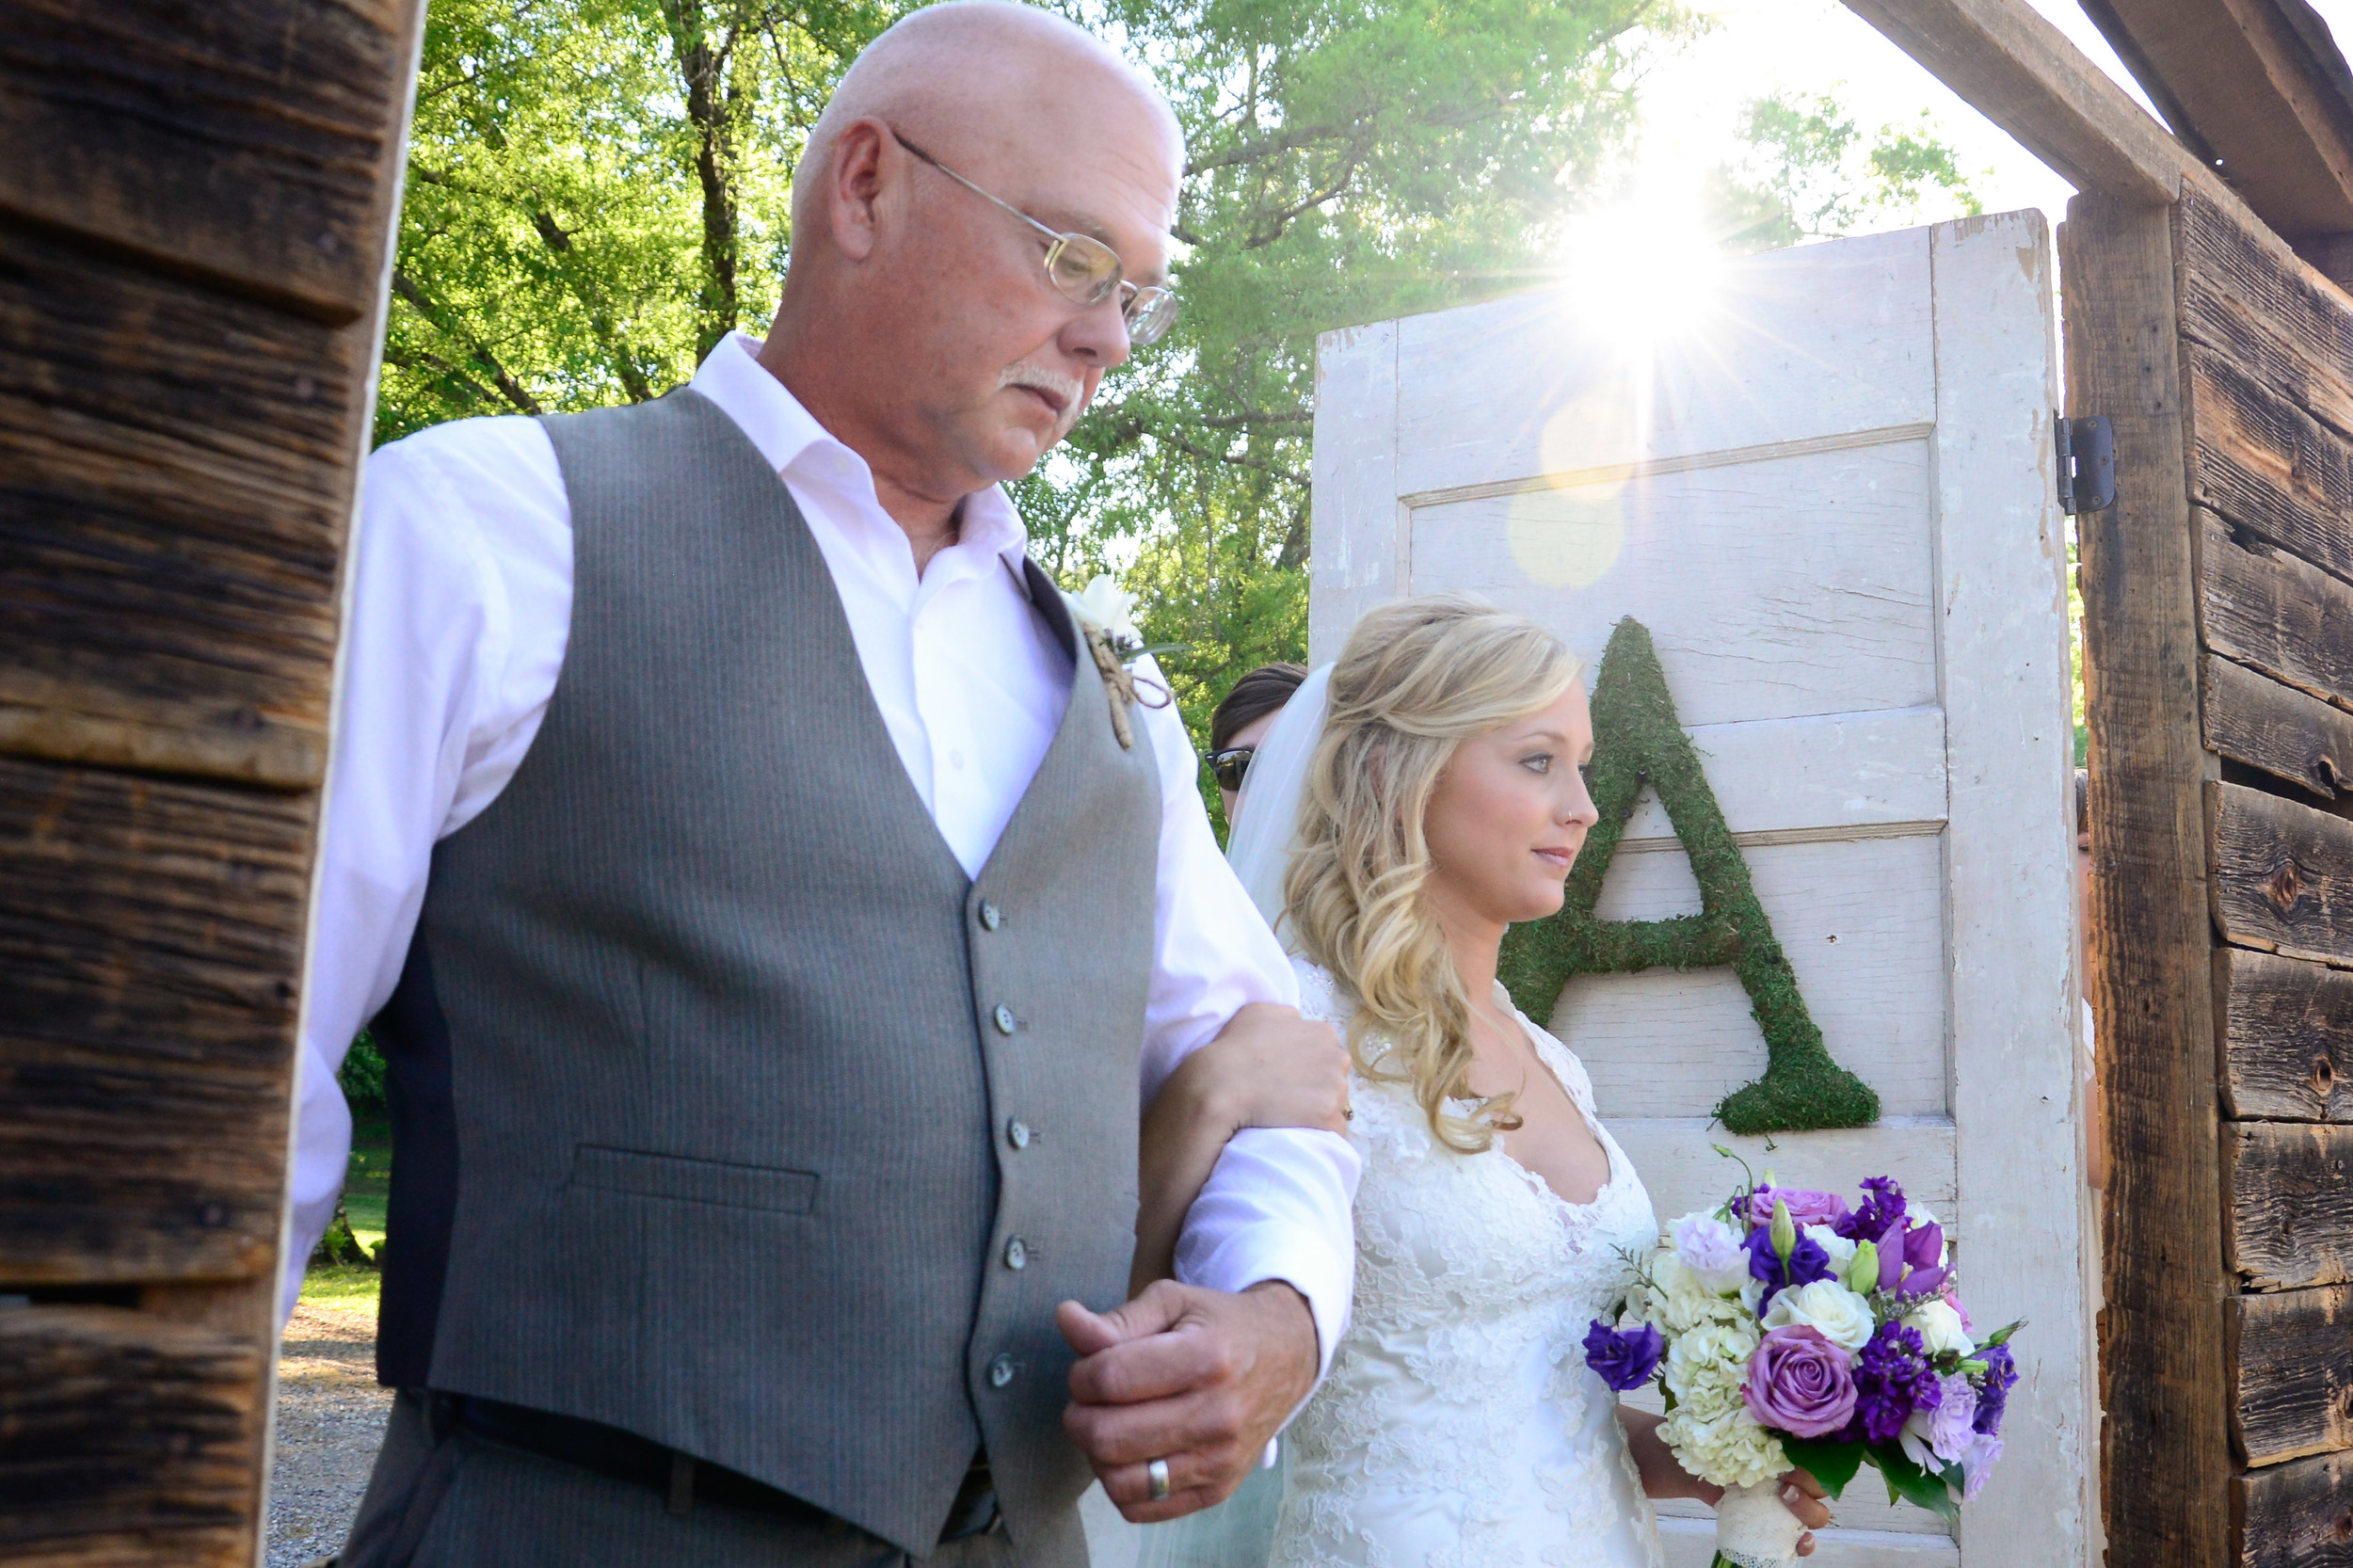 To bring the drama of a chapel weddinginto an outside ceremony, trysetting up doors to be swept open when the bridal march begins and the bride enters.